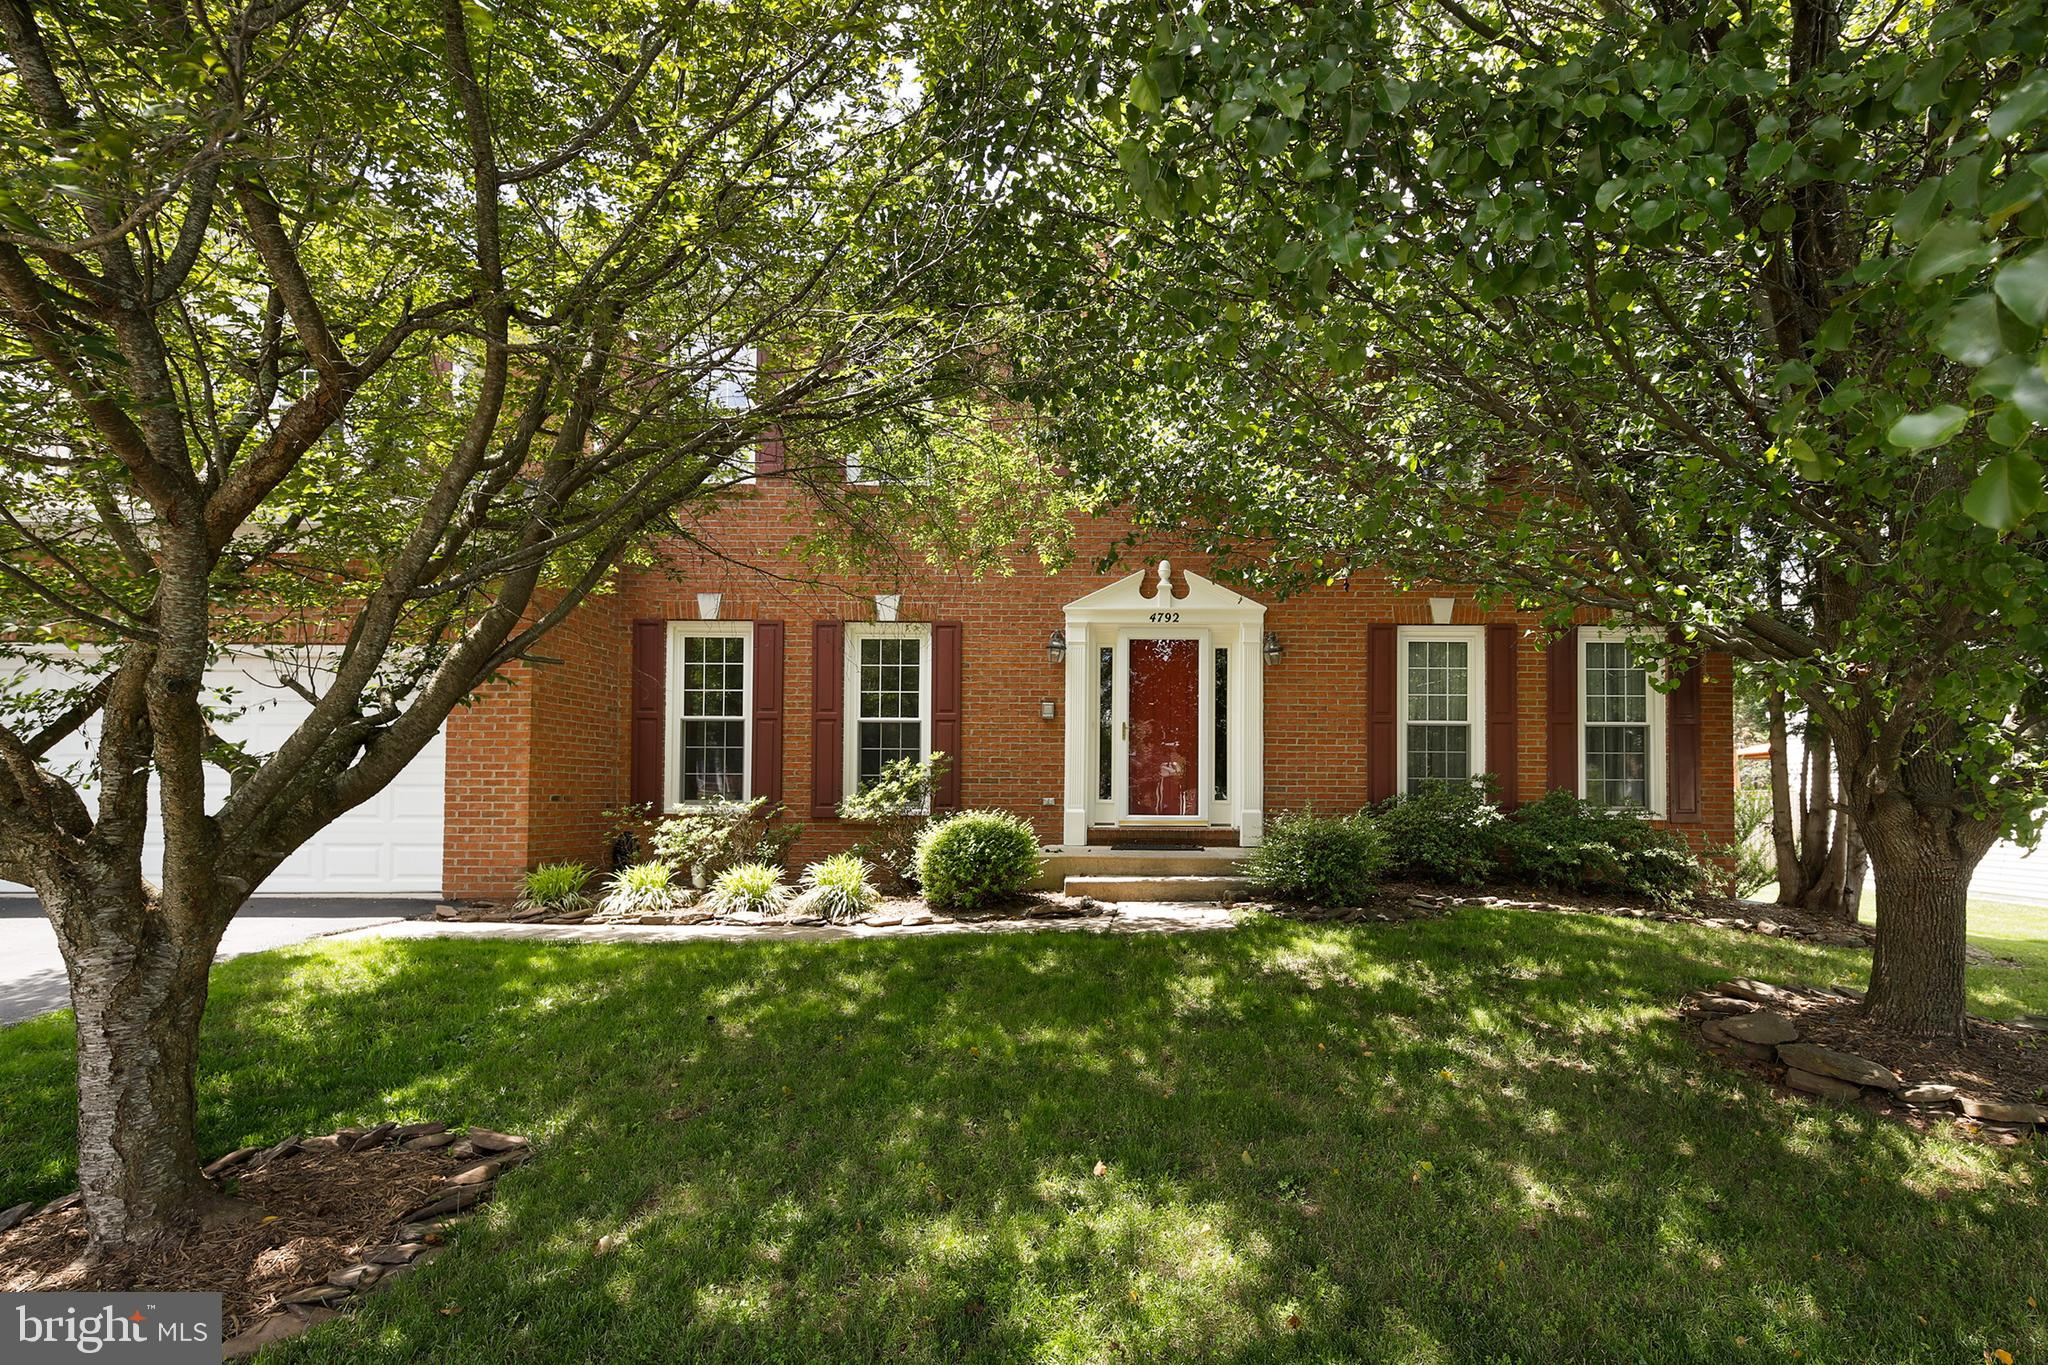 4792 WALBERN COURT, CHANTILLY, VA 20151